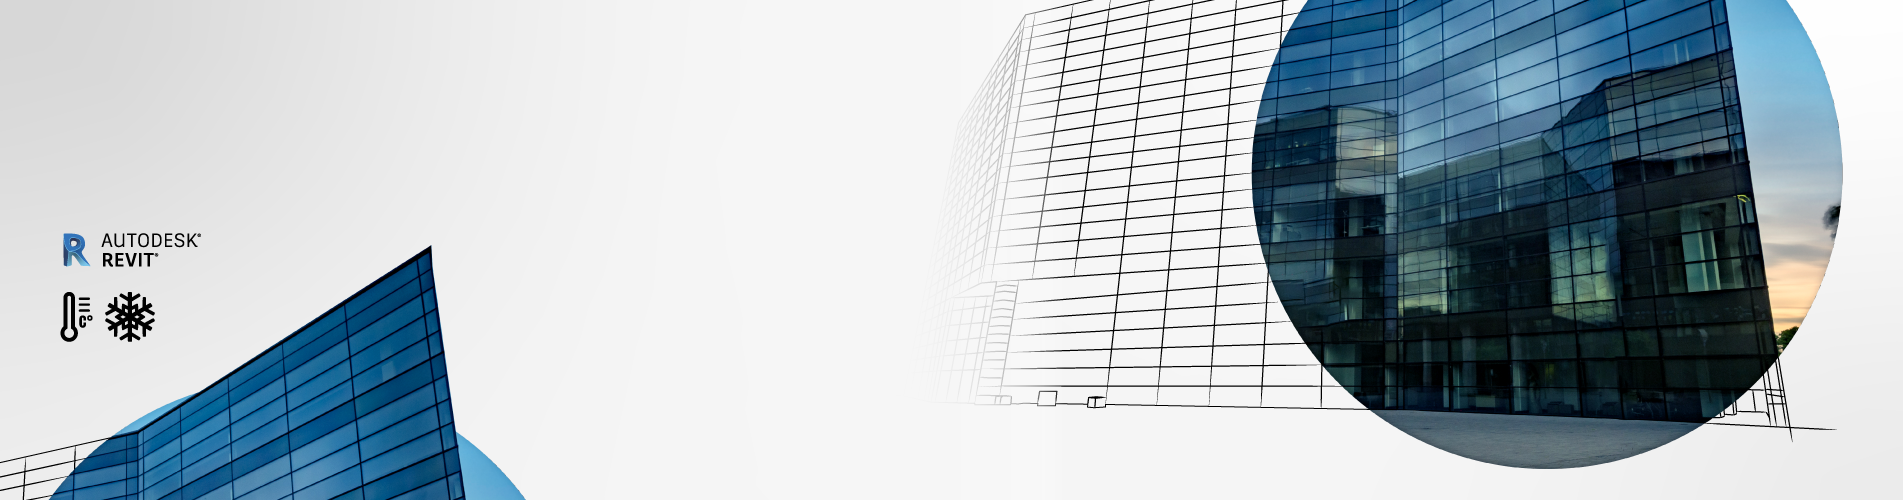 Heating & Cooling Solutions for Revit